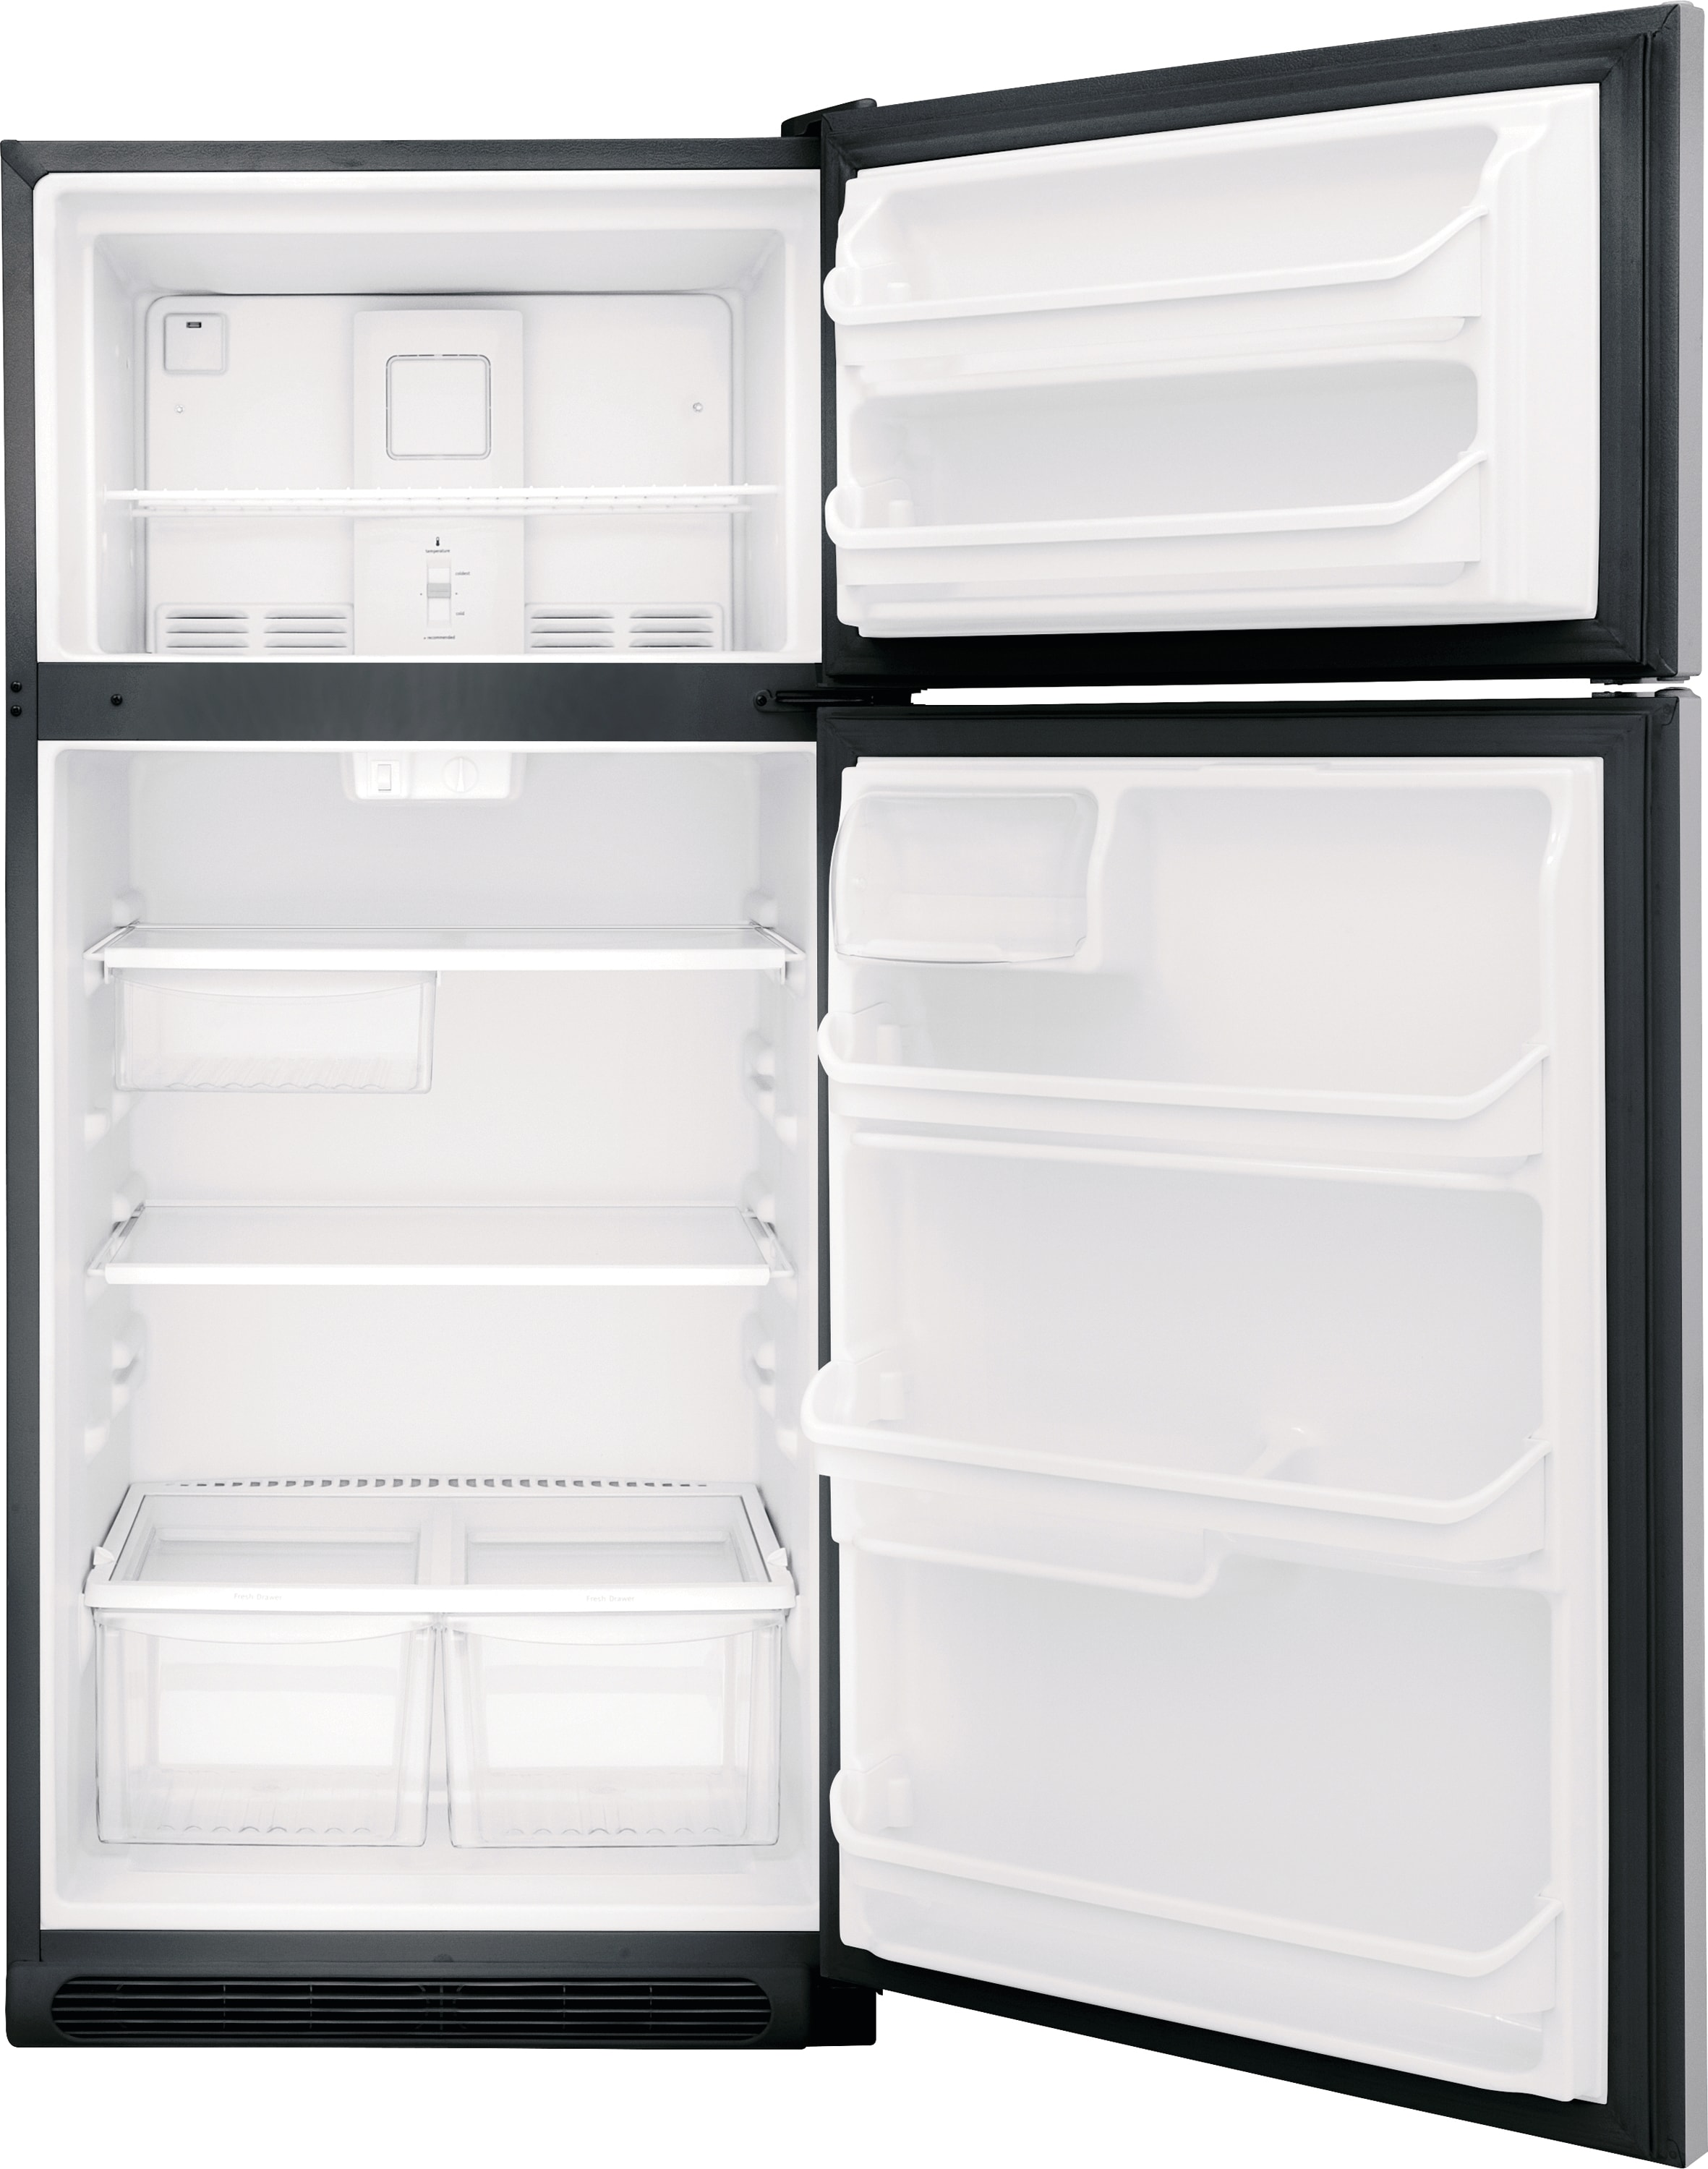 Model: FFTR1821TS | 18 Cu. Ft. Top Freezer Refrigerator